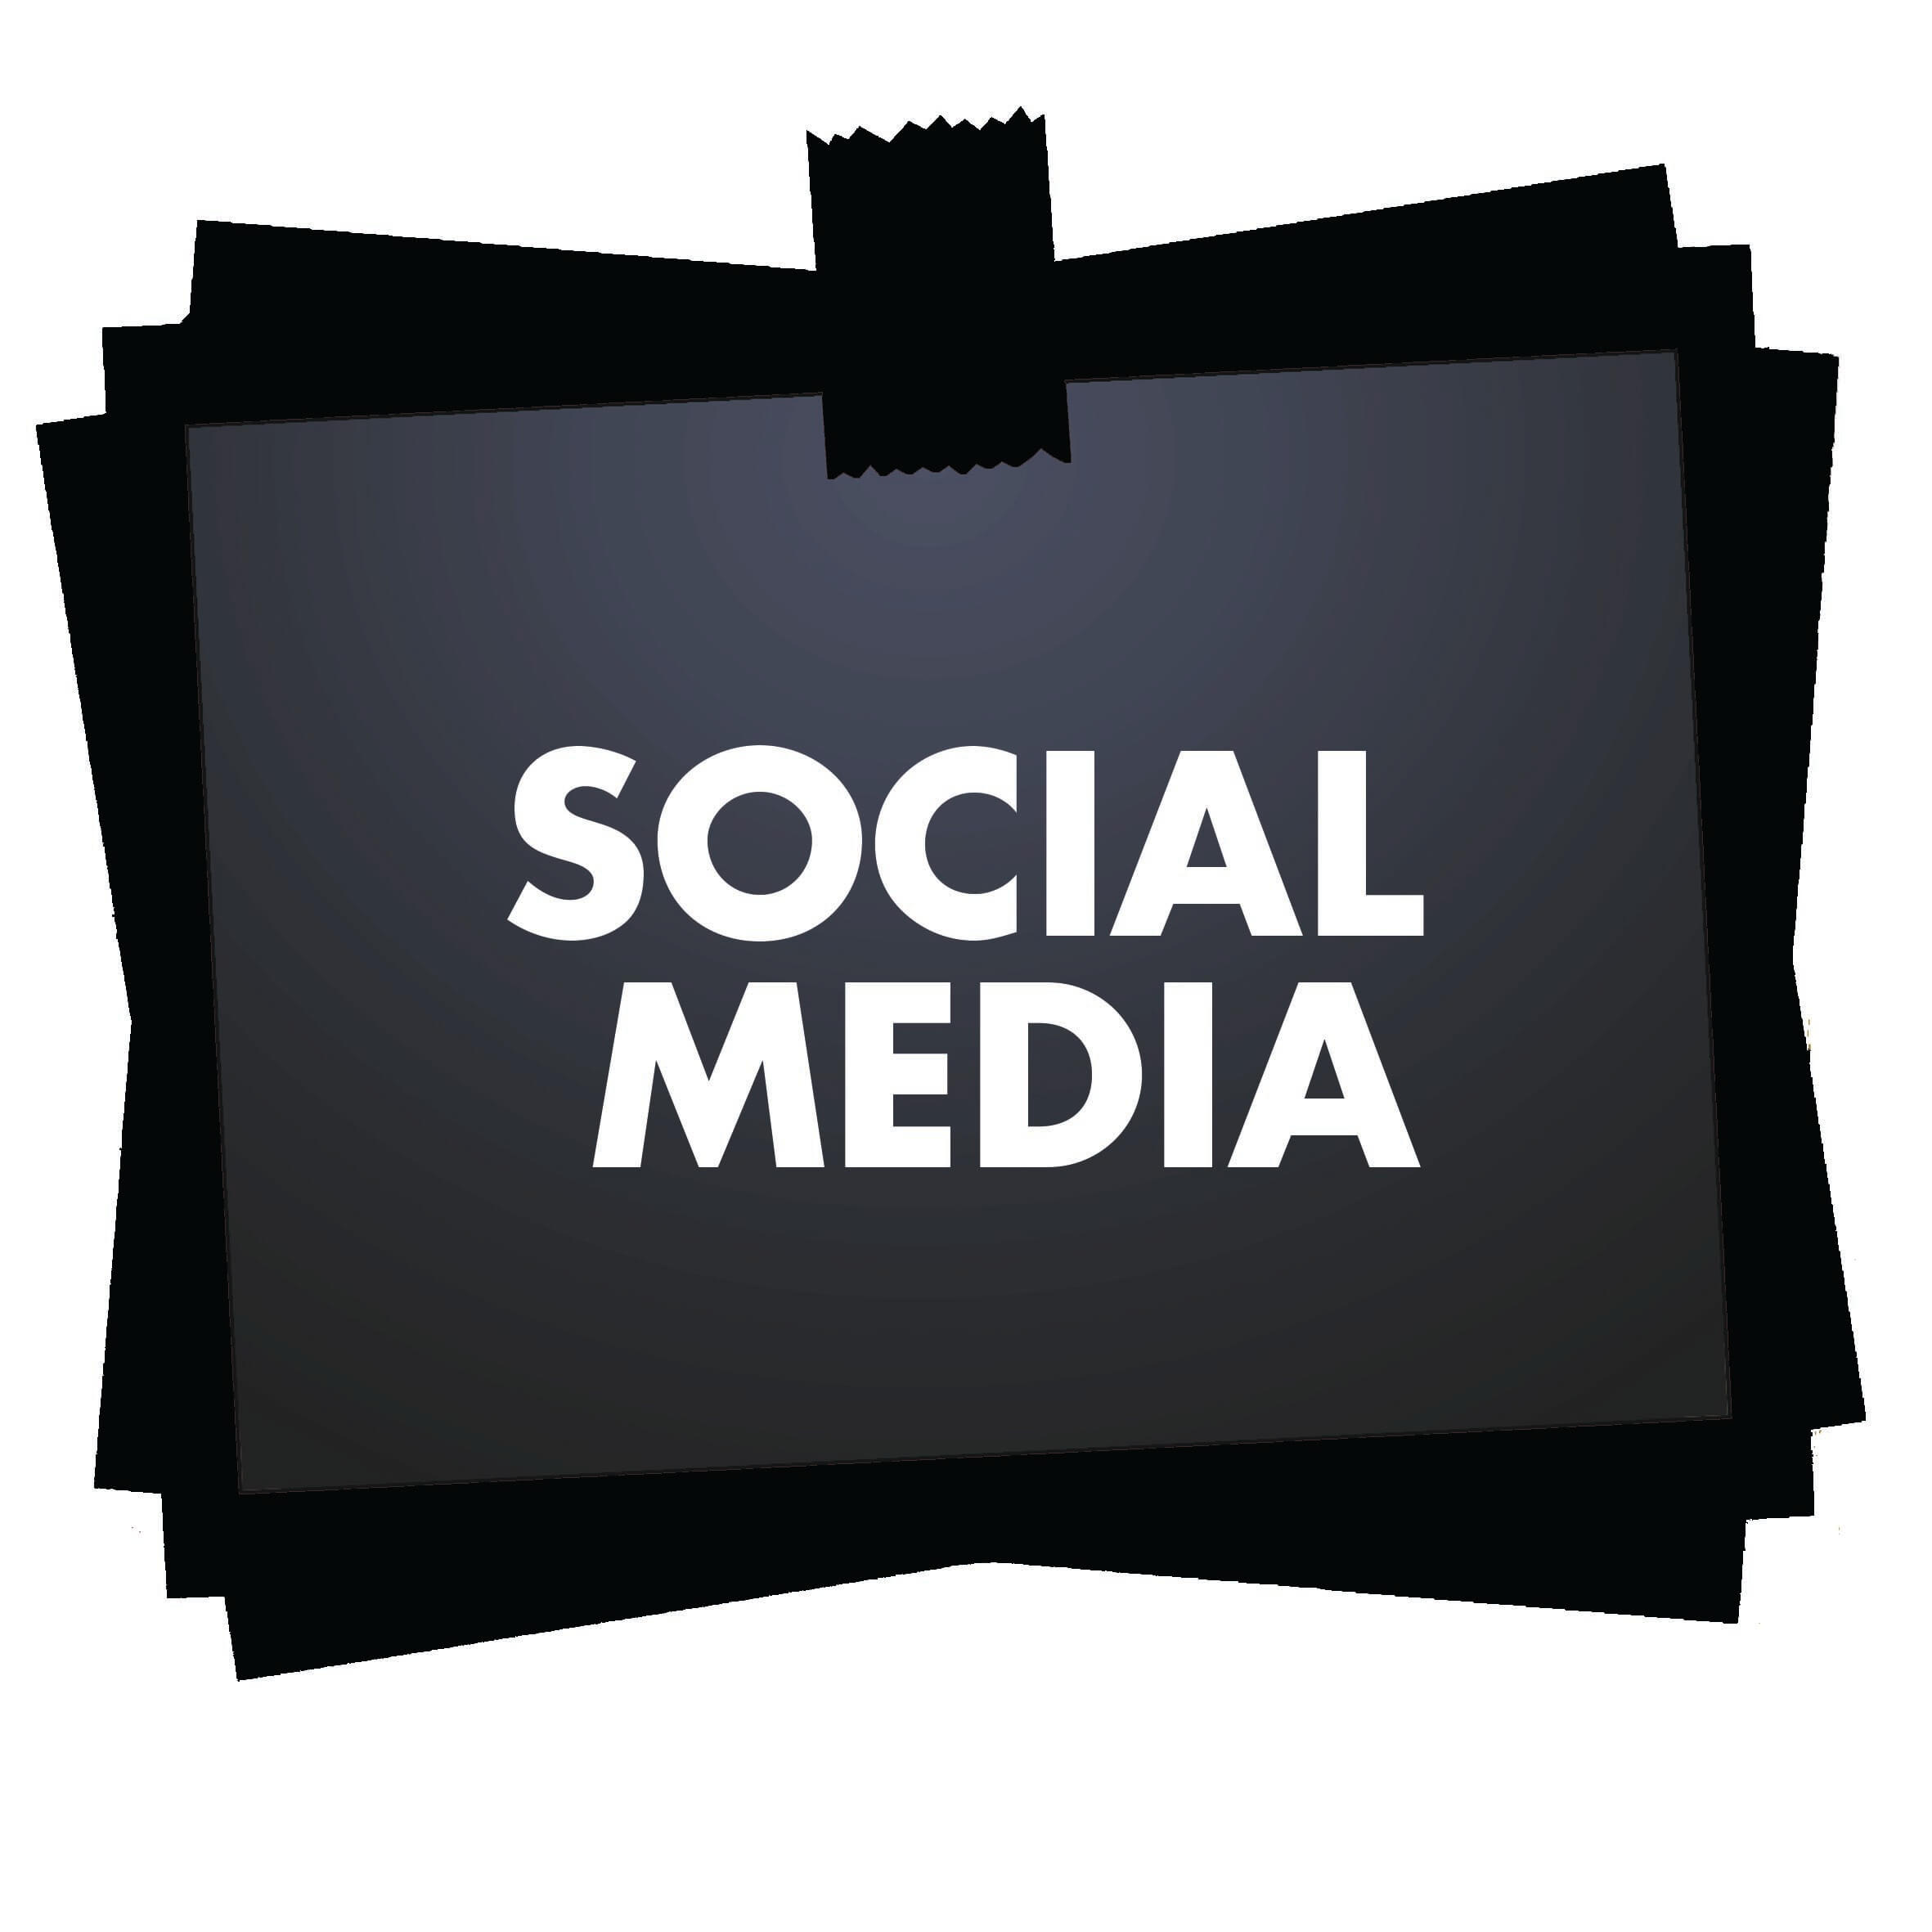 Social media agency, Social media Birmingham, EAST VILLAGE PR